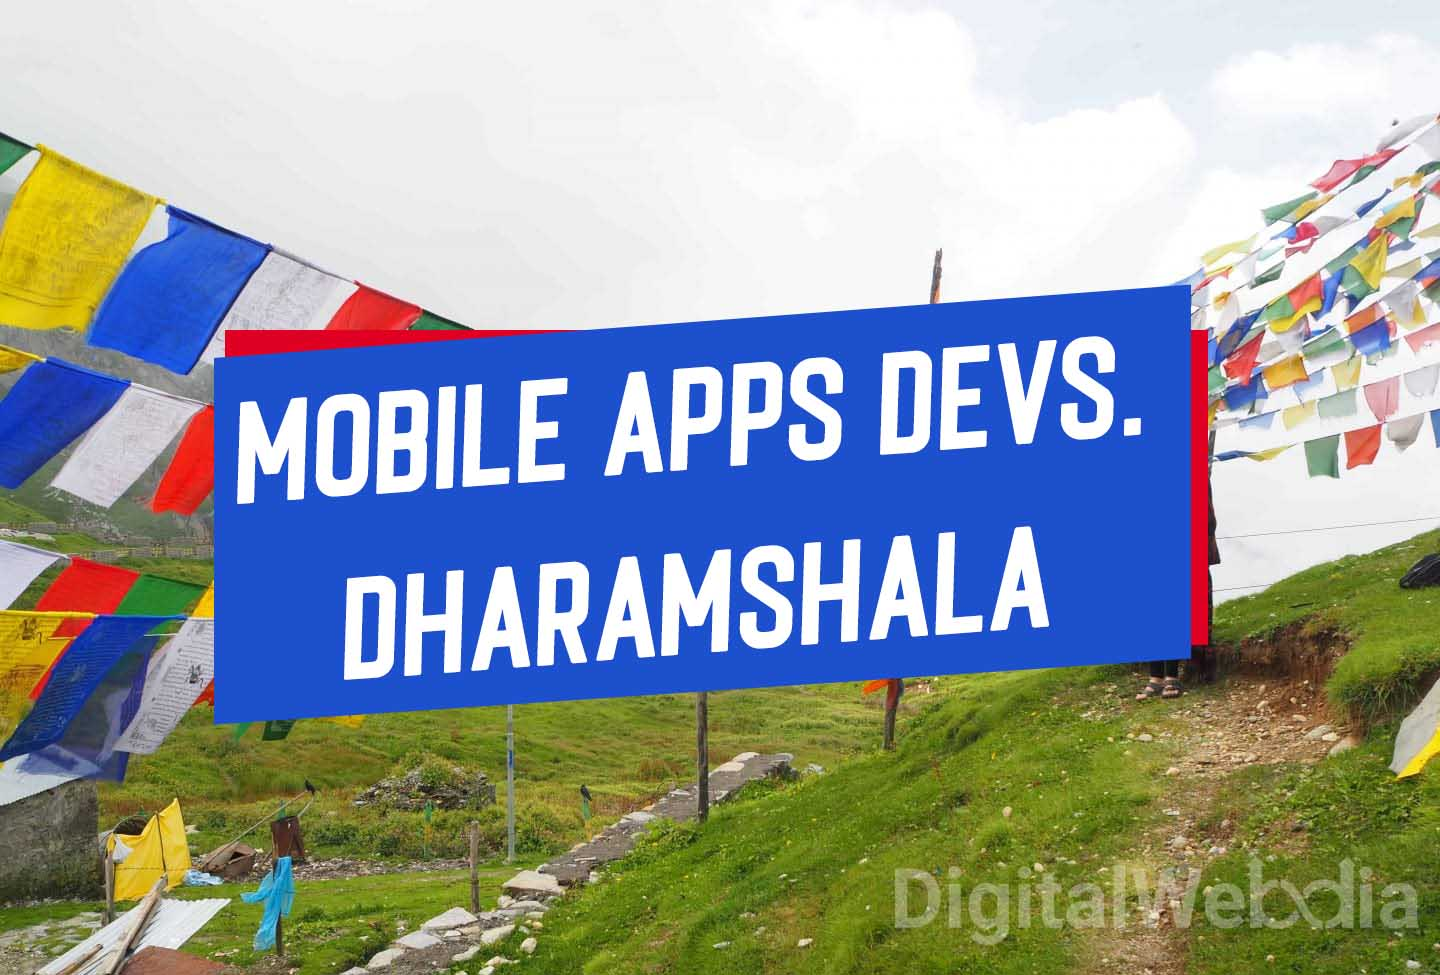 No.1 Android Apps Development in Dharamshala, Himachal Pradesh